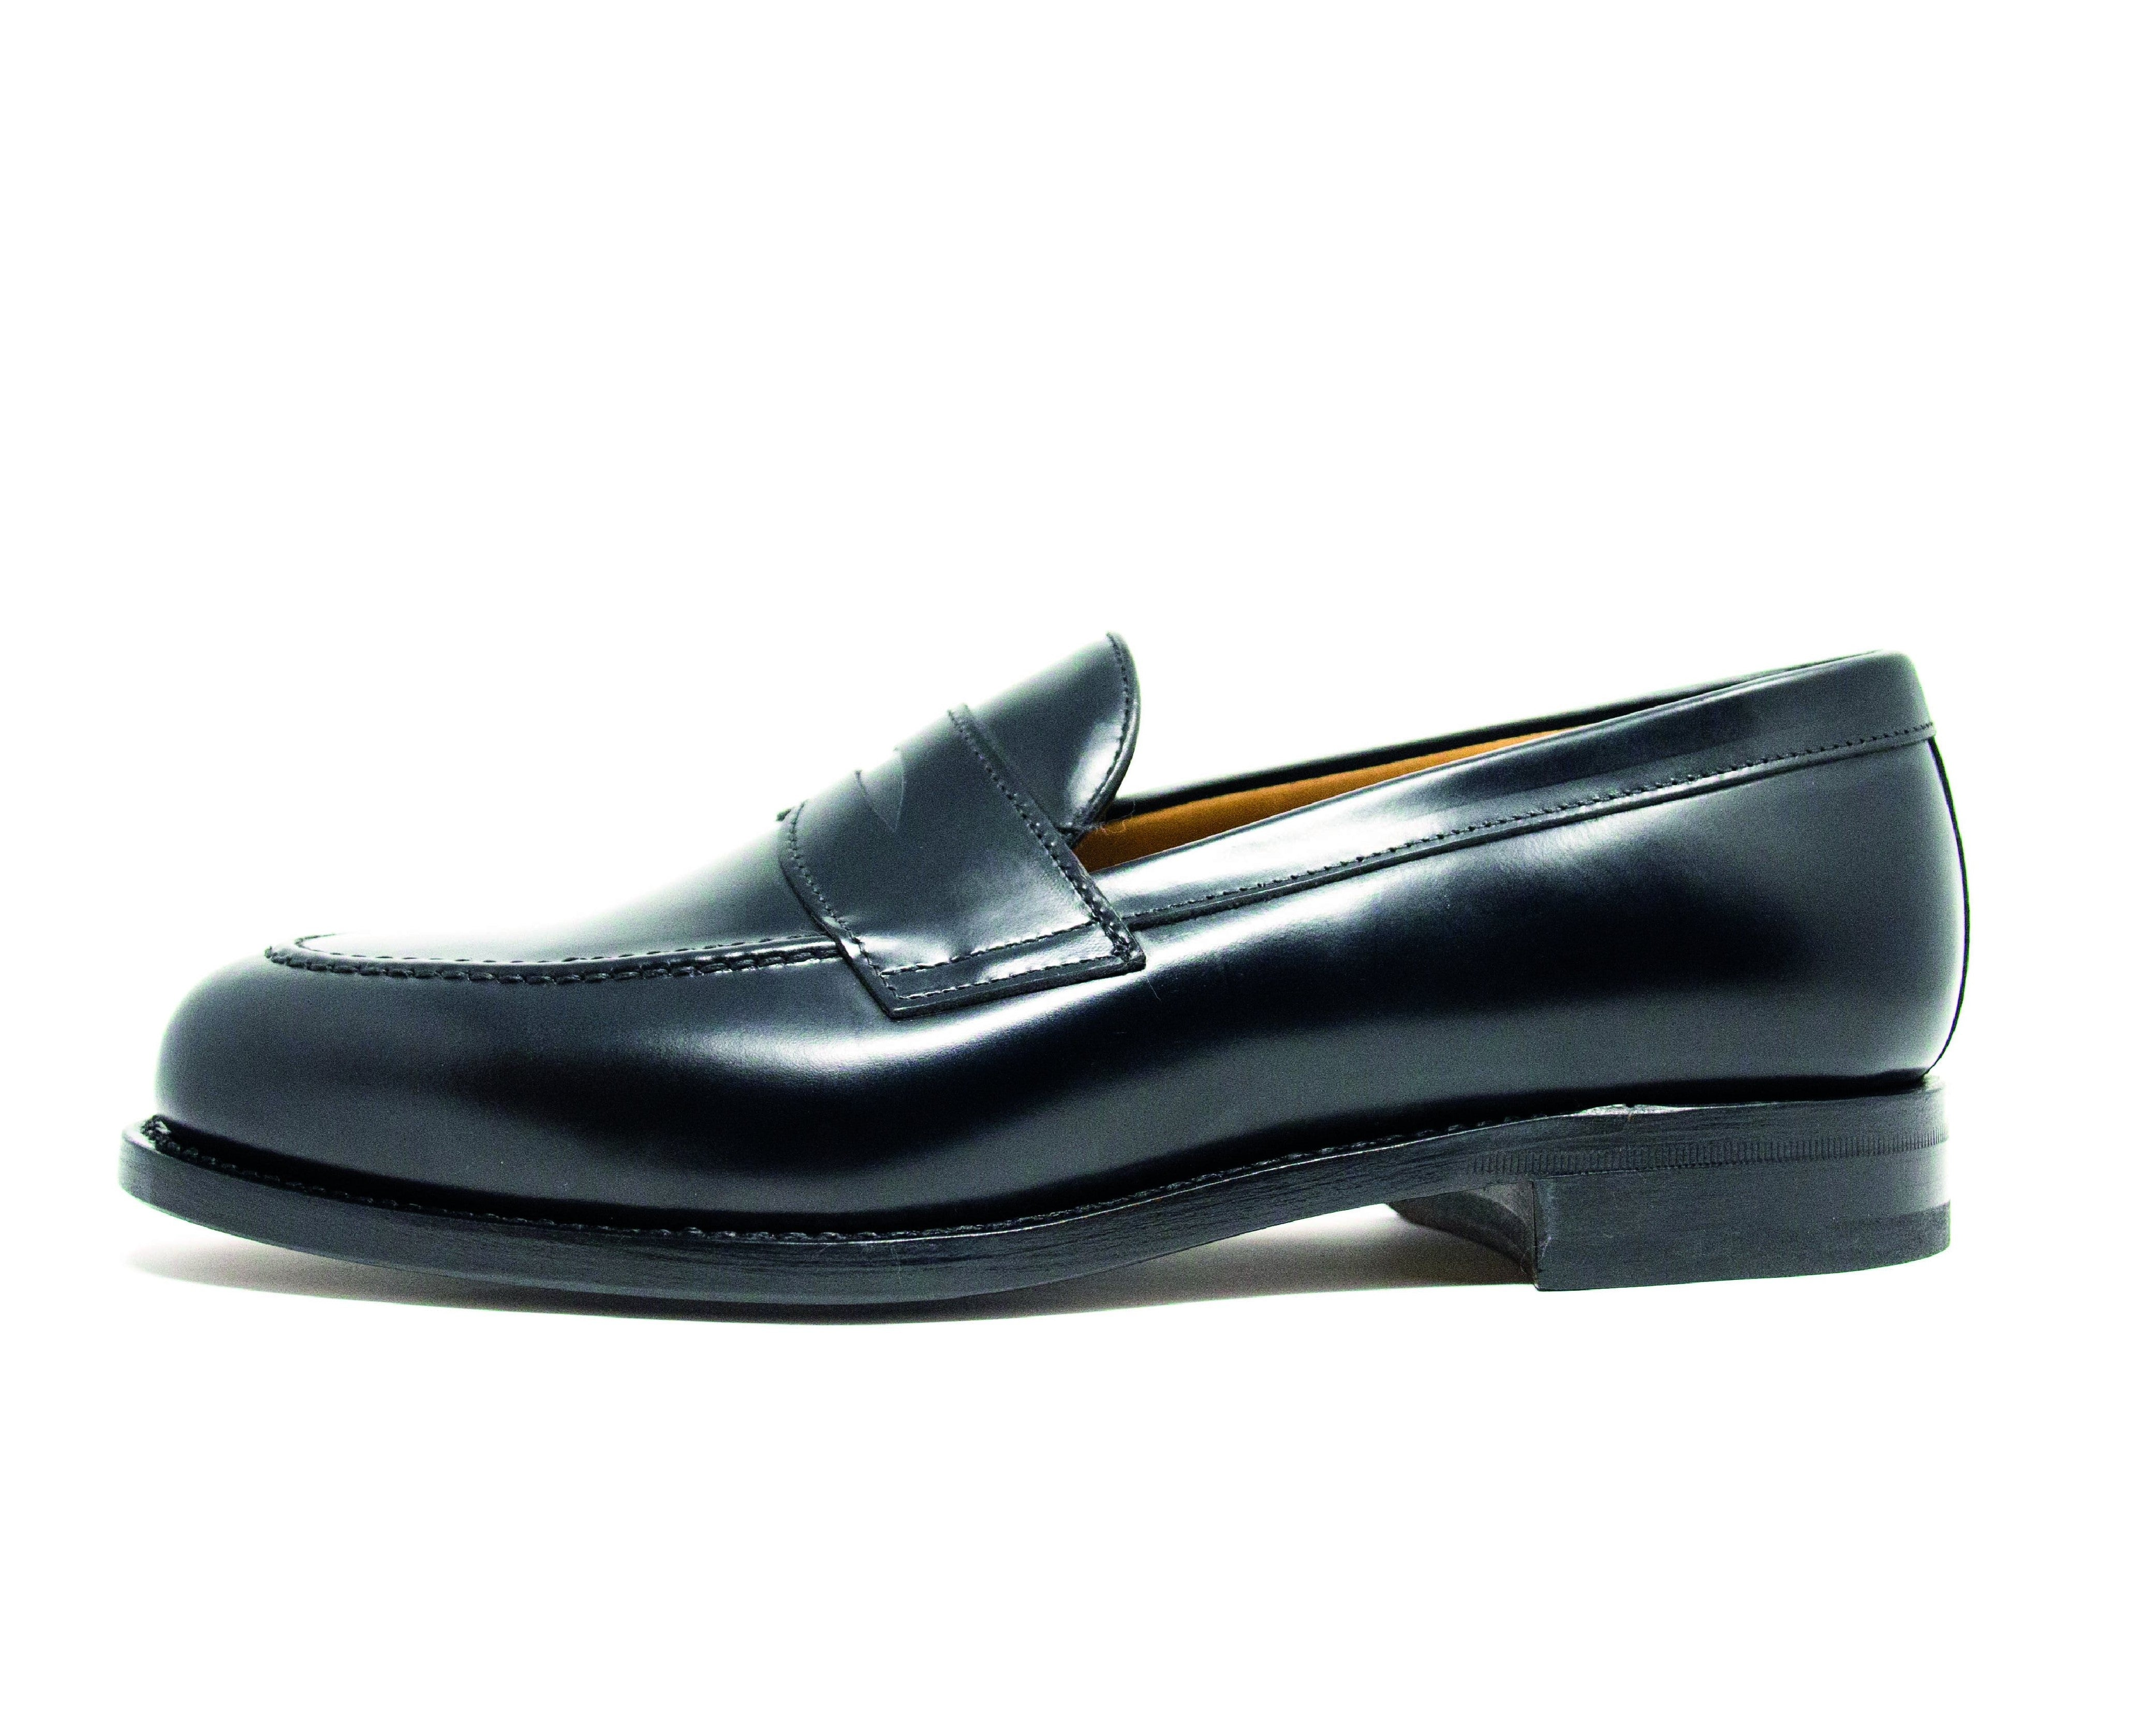 Berwick Men's Loafer Leather Slip-On Shoes 9628/K3